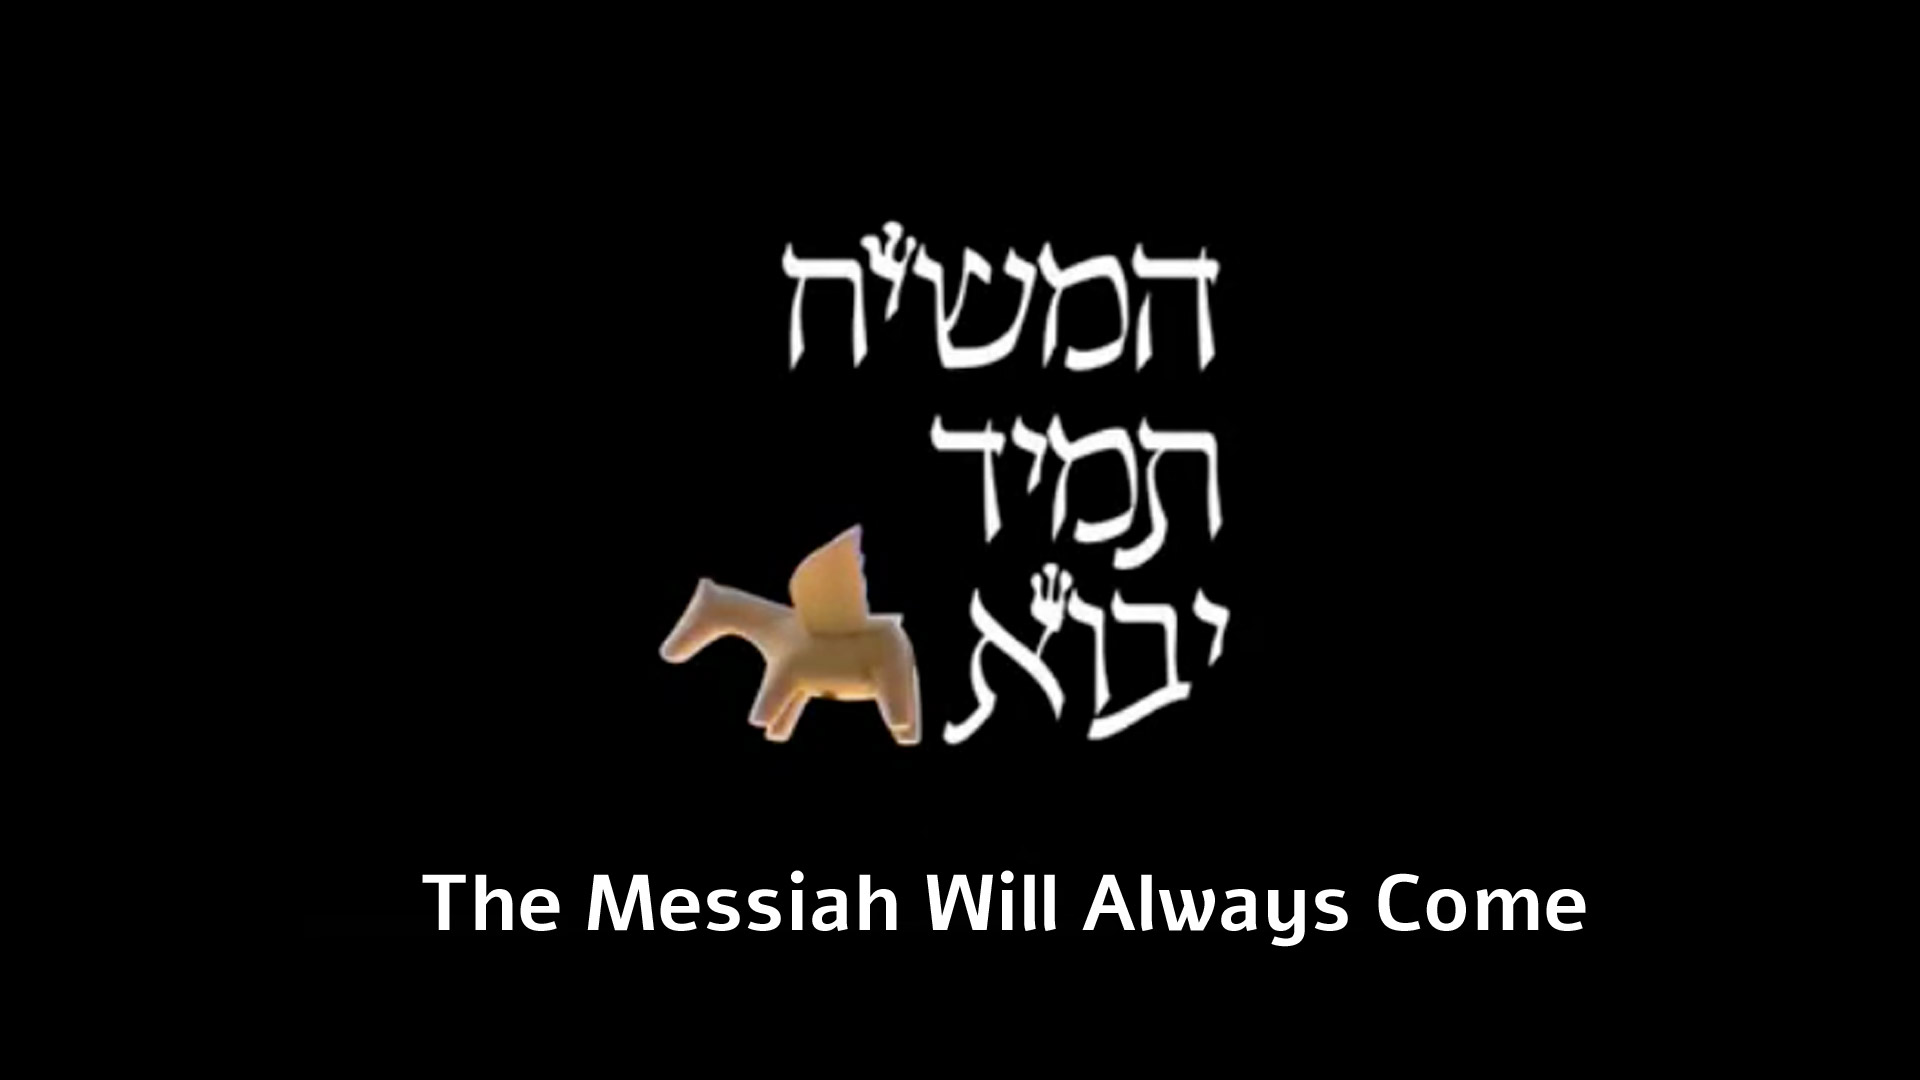 Watch Full Movie - The Messiah Will Always Come